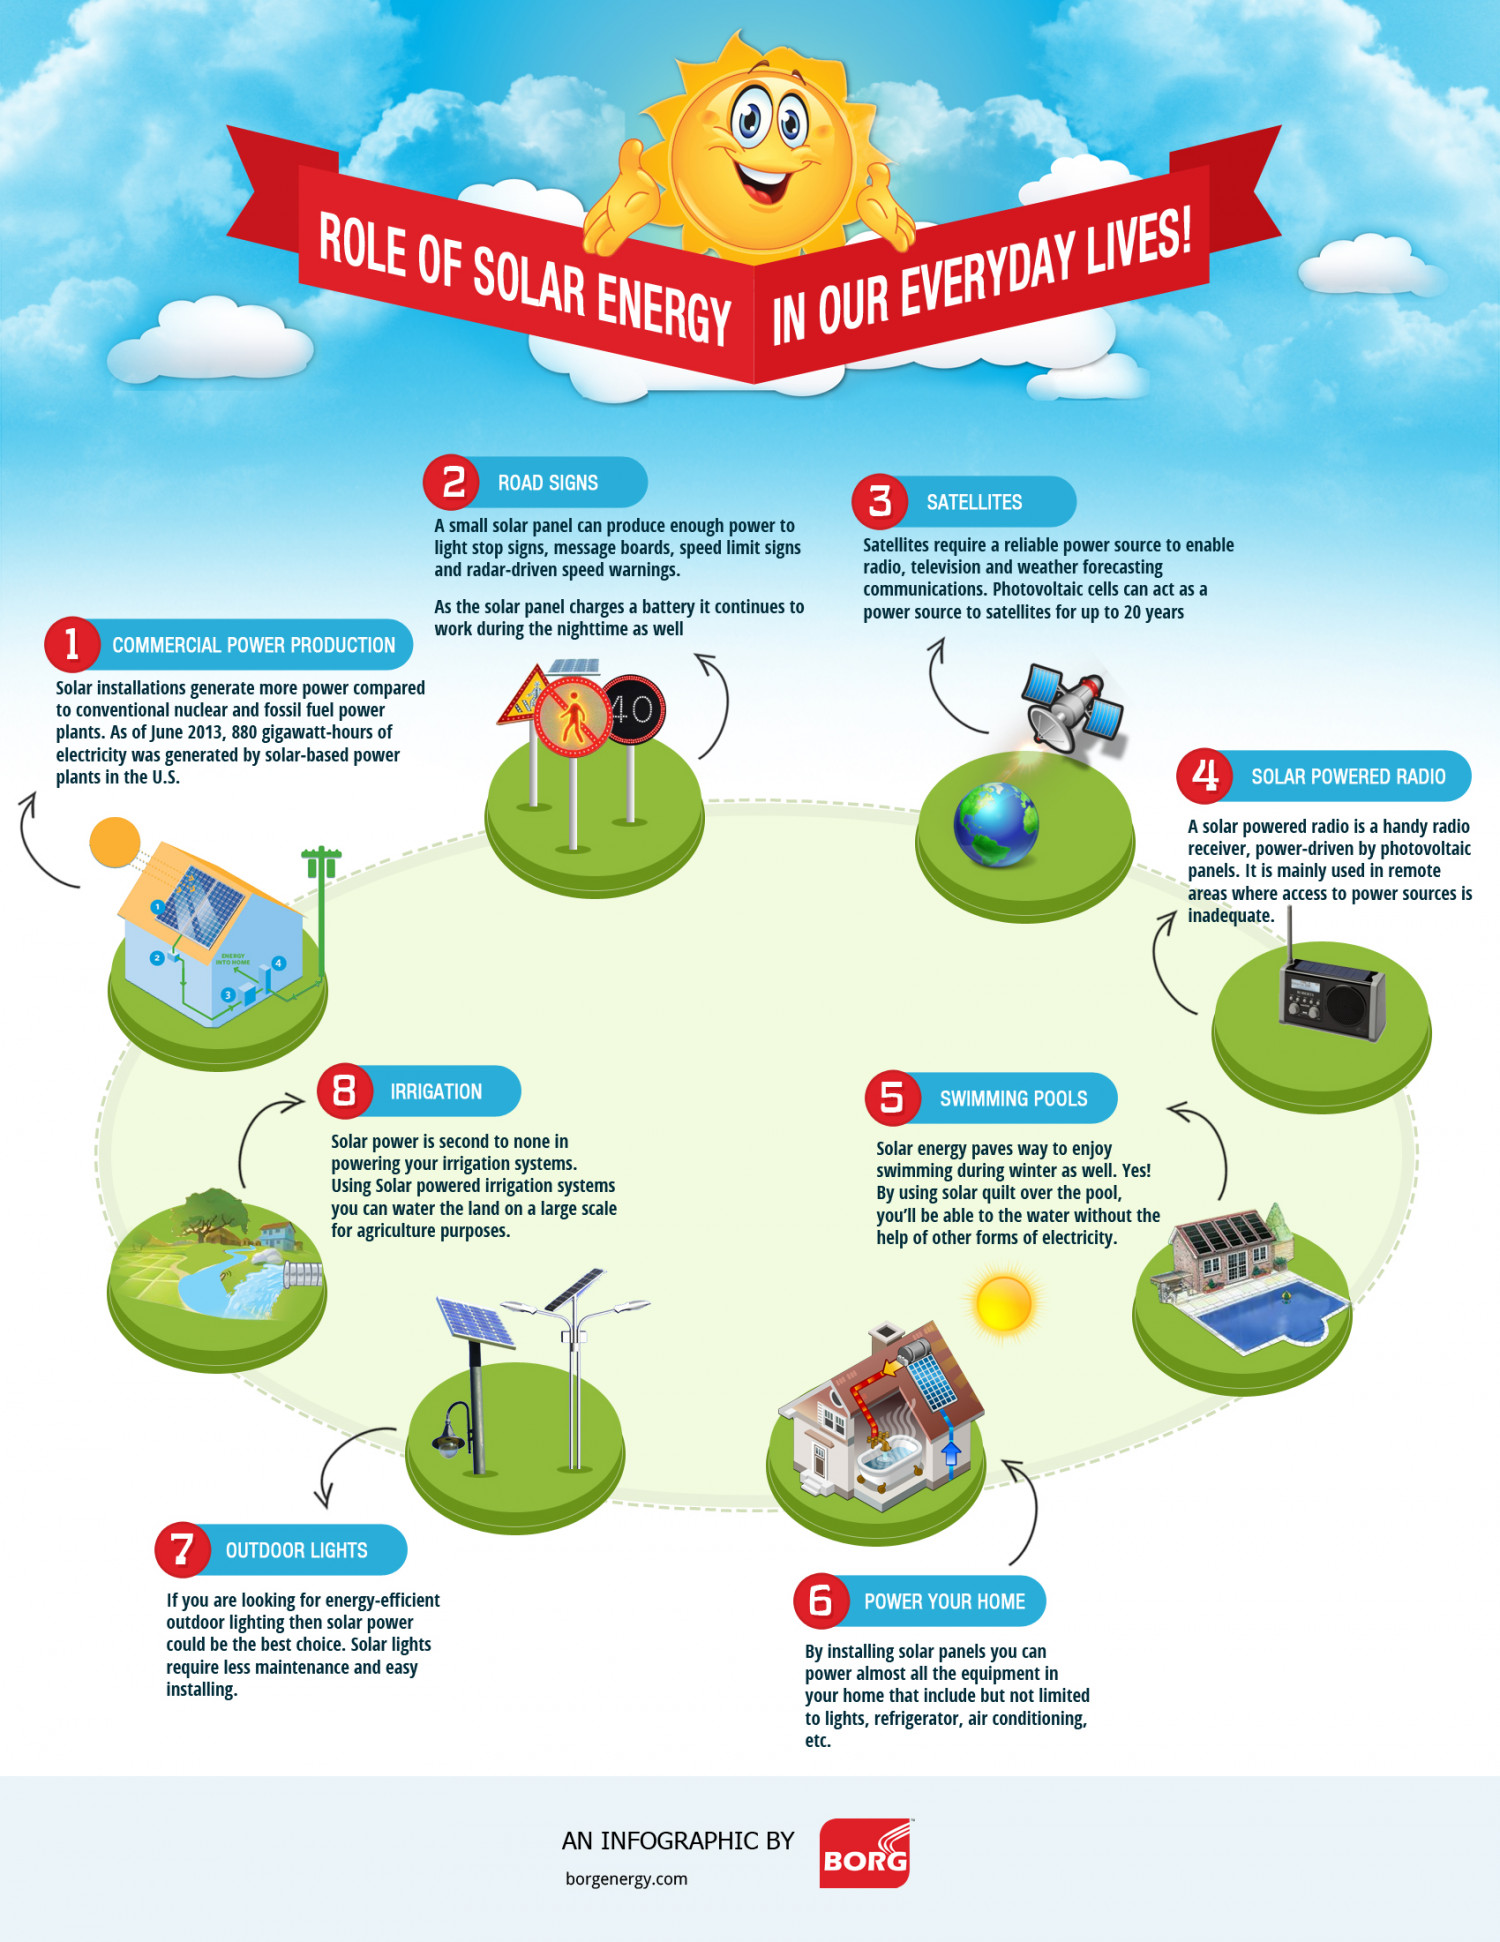 An infographic on the influence of solar energy in our for Uses of solar energy for kids